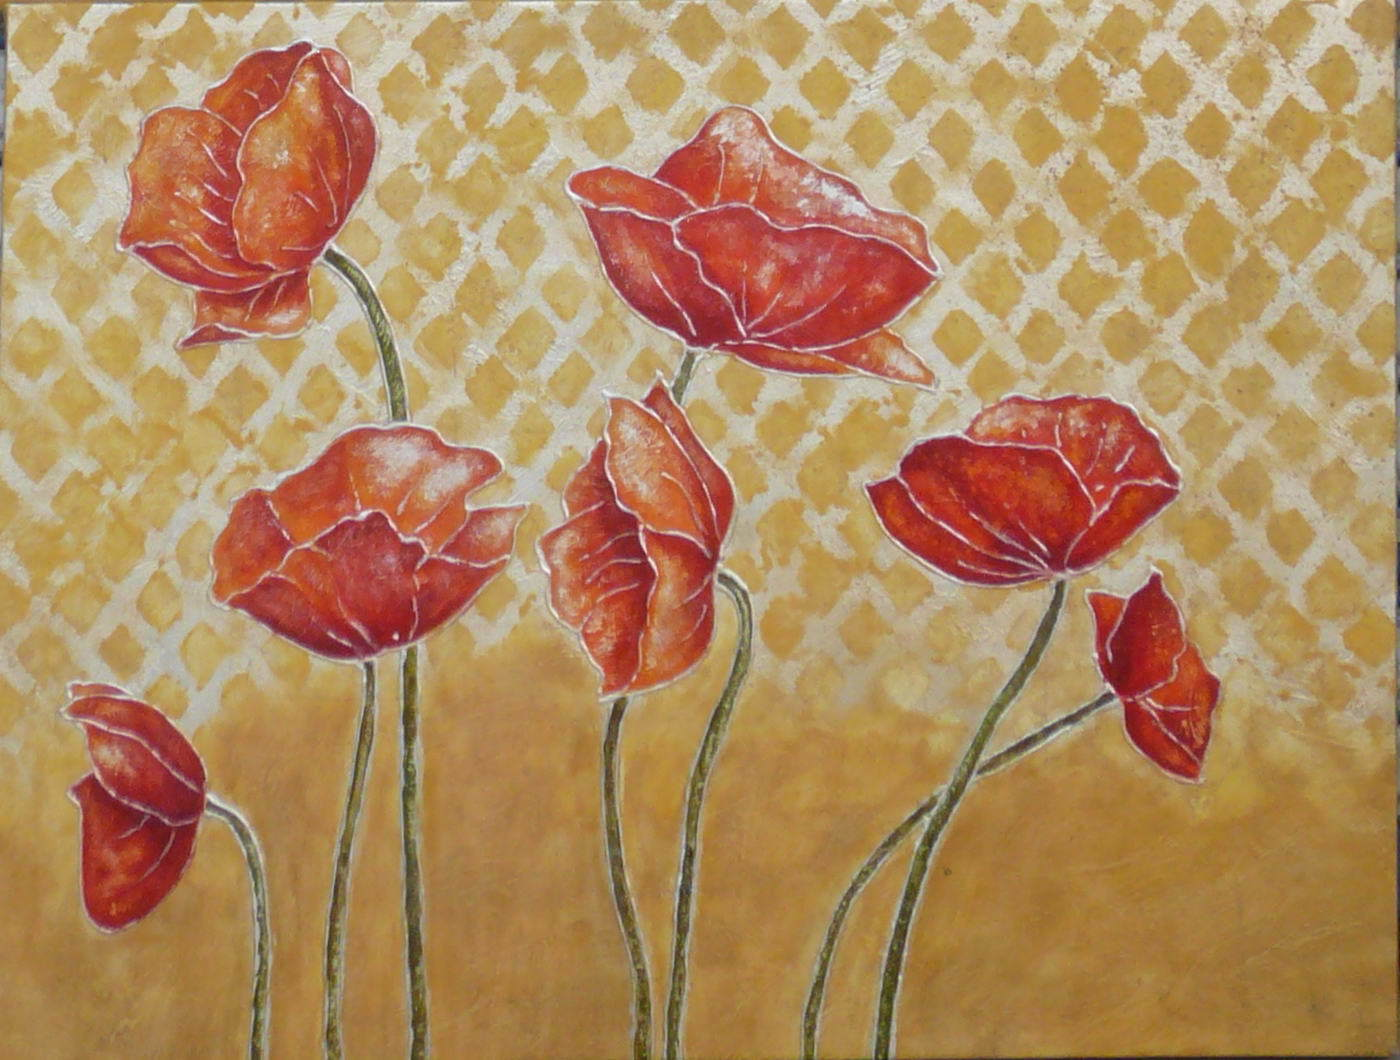 Hand Made Flower Oil Painting on Canvas (001)